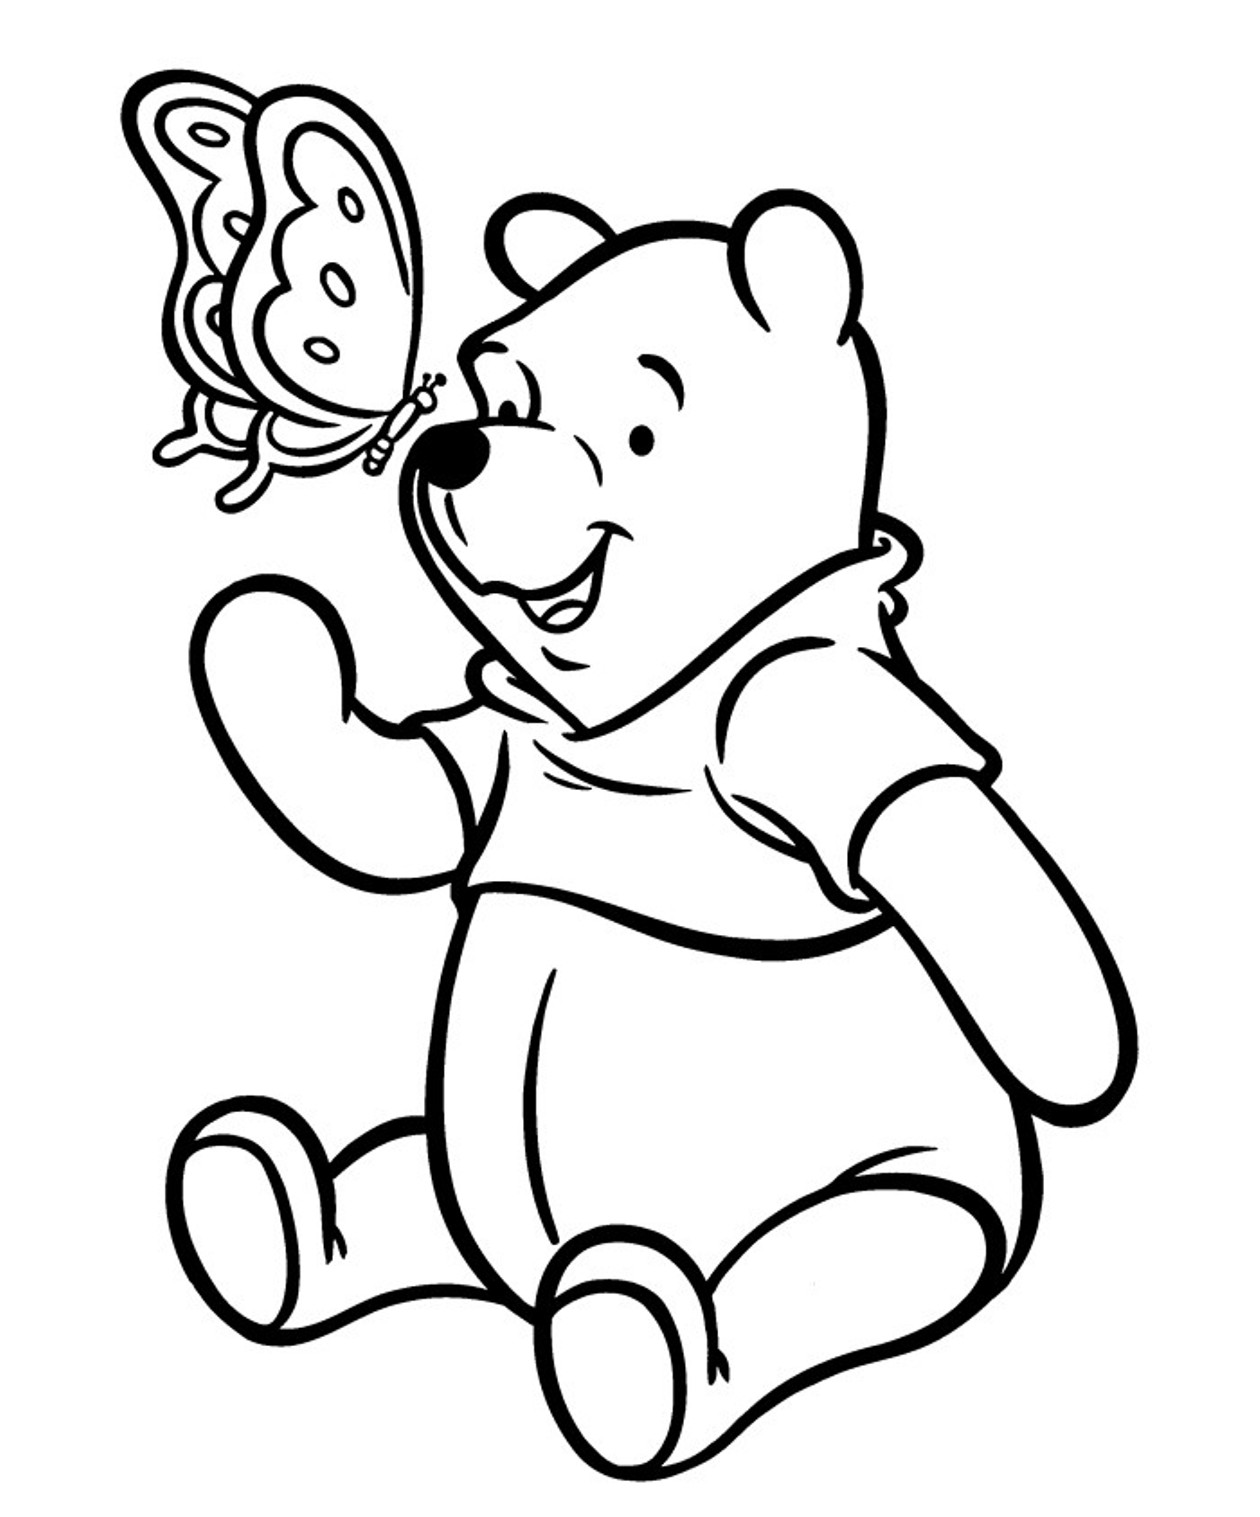 winnie the pooh drawing classic winnie the pooh drawing at getdrawings free download the winnie pooh drawing